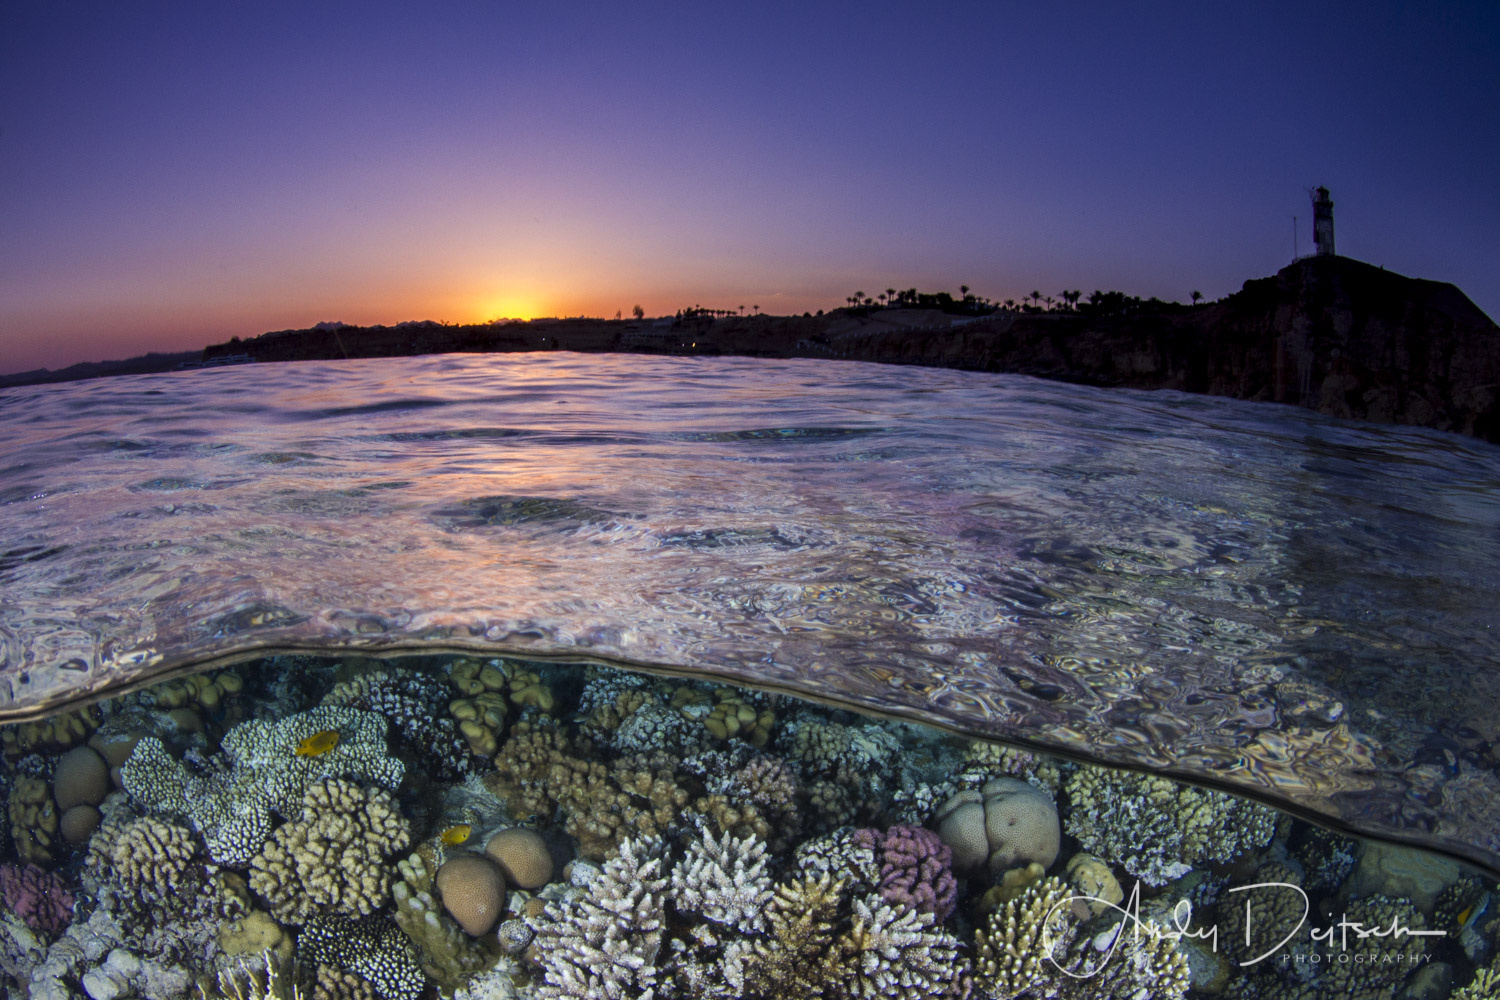 Sunset on the Reef by Andy Deitsch